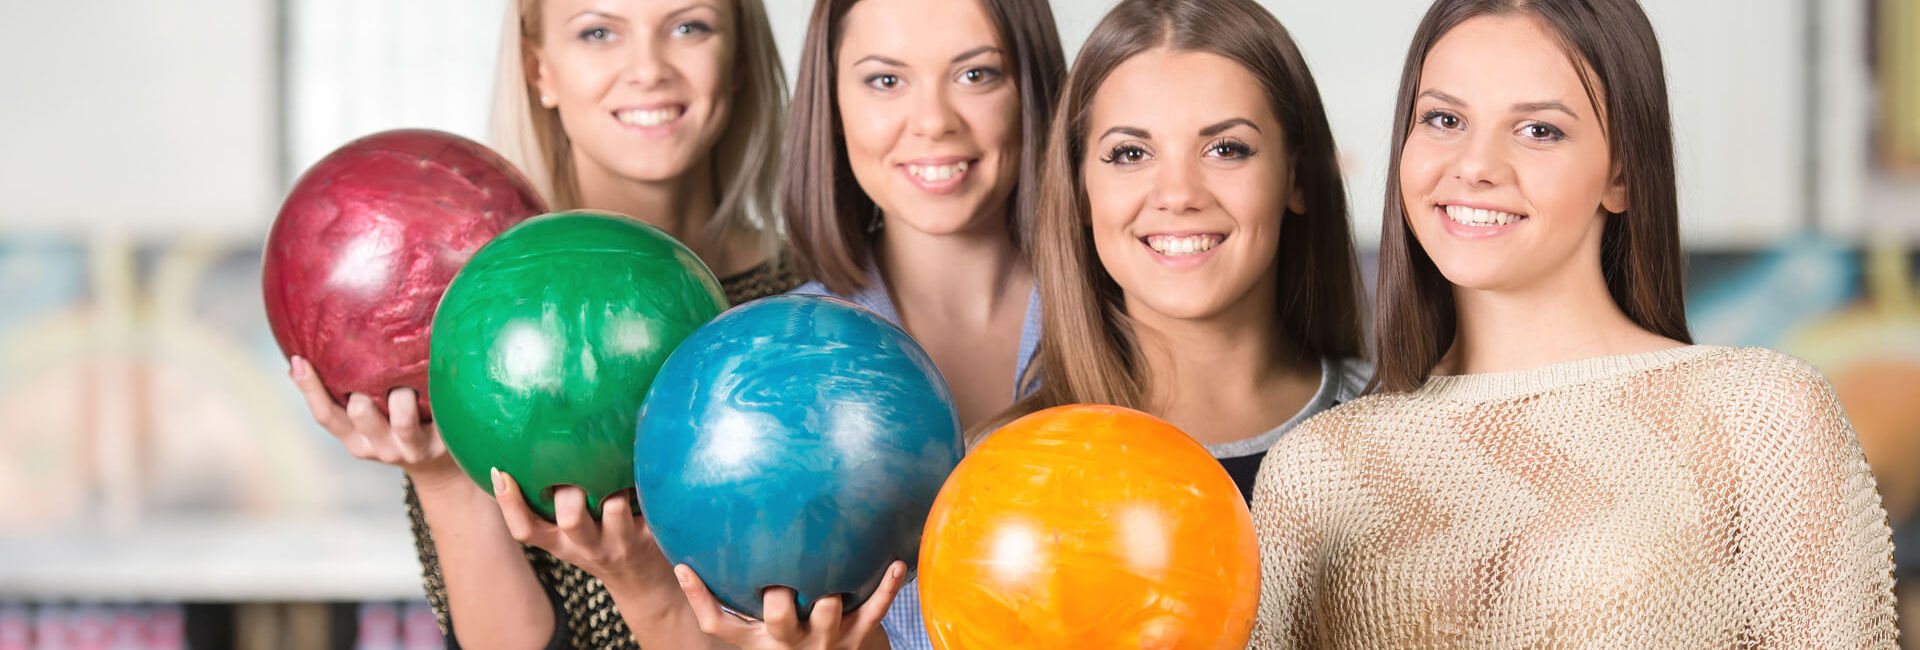 Four women holding a bowling ball